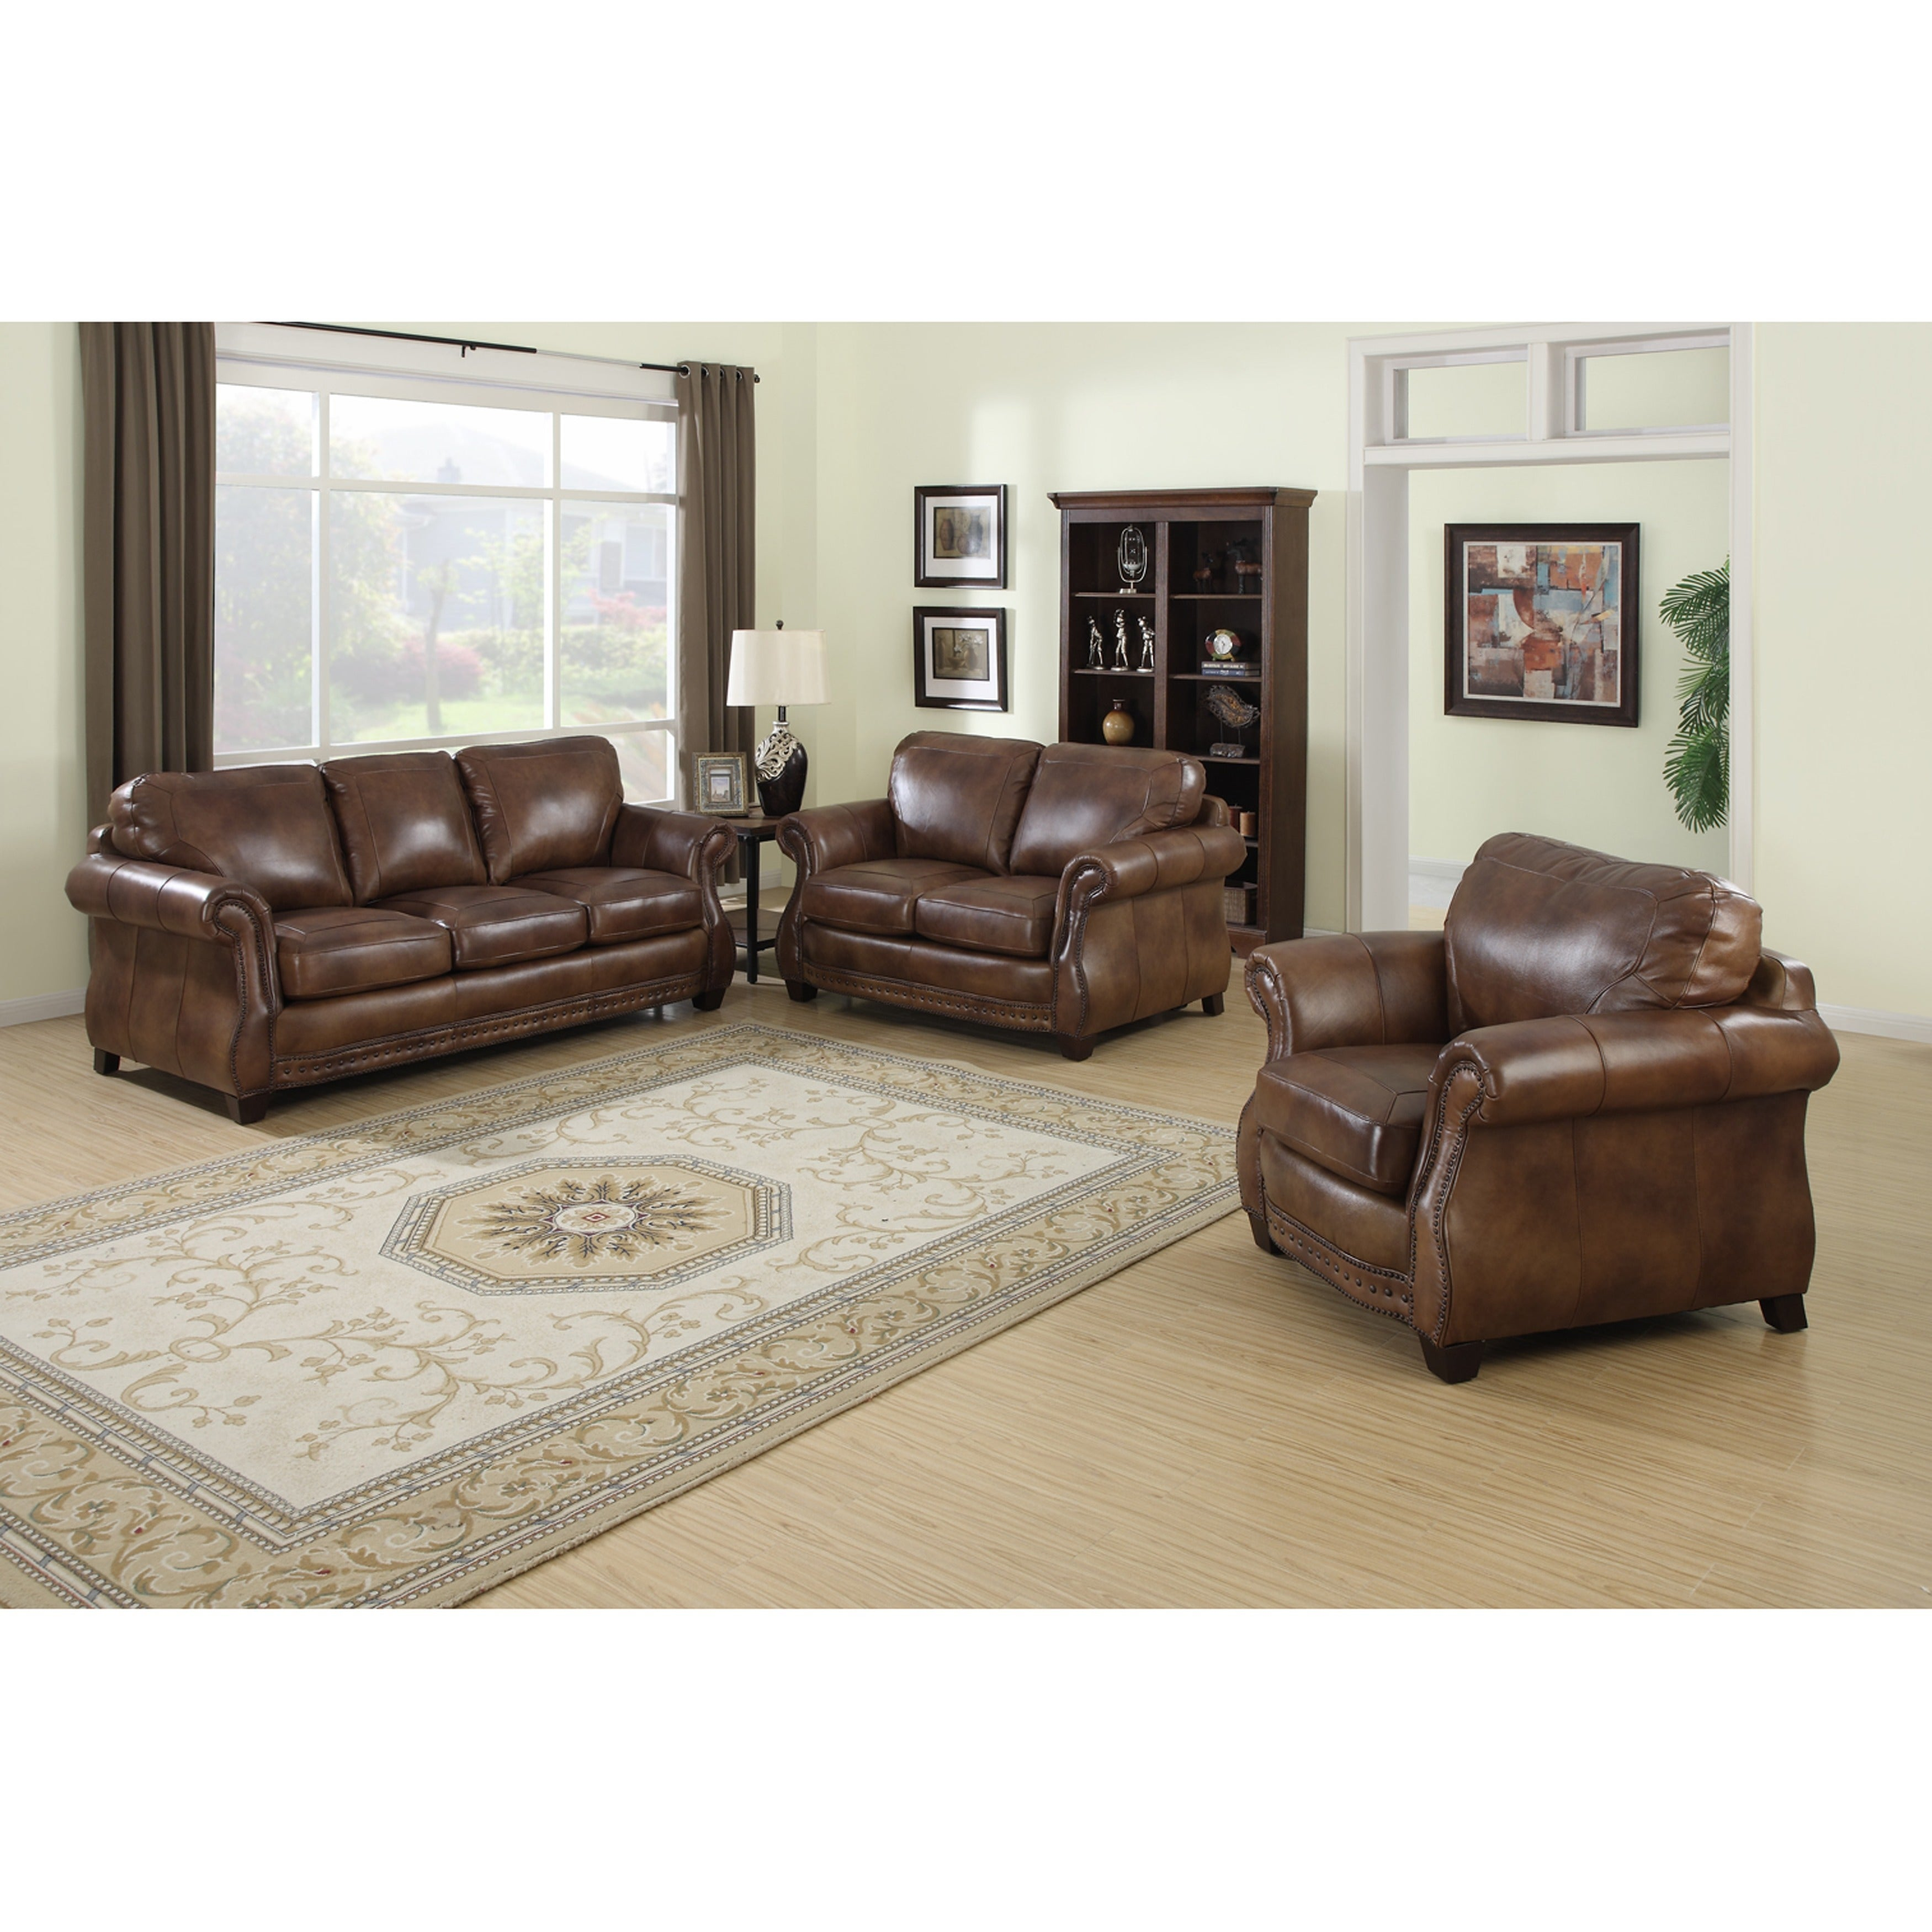 Picture of: Sterling Cognac Brown Italian Leather Sofa Loveseat And Chair On Sale Overstock 6237564